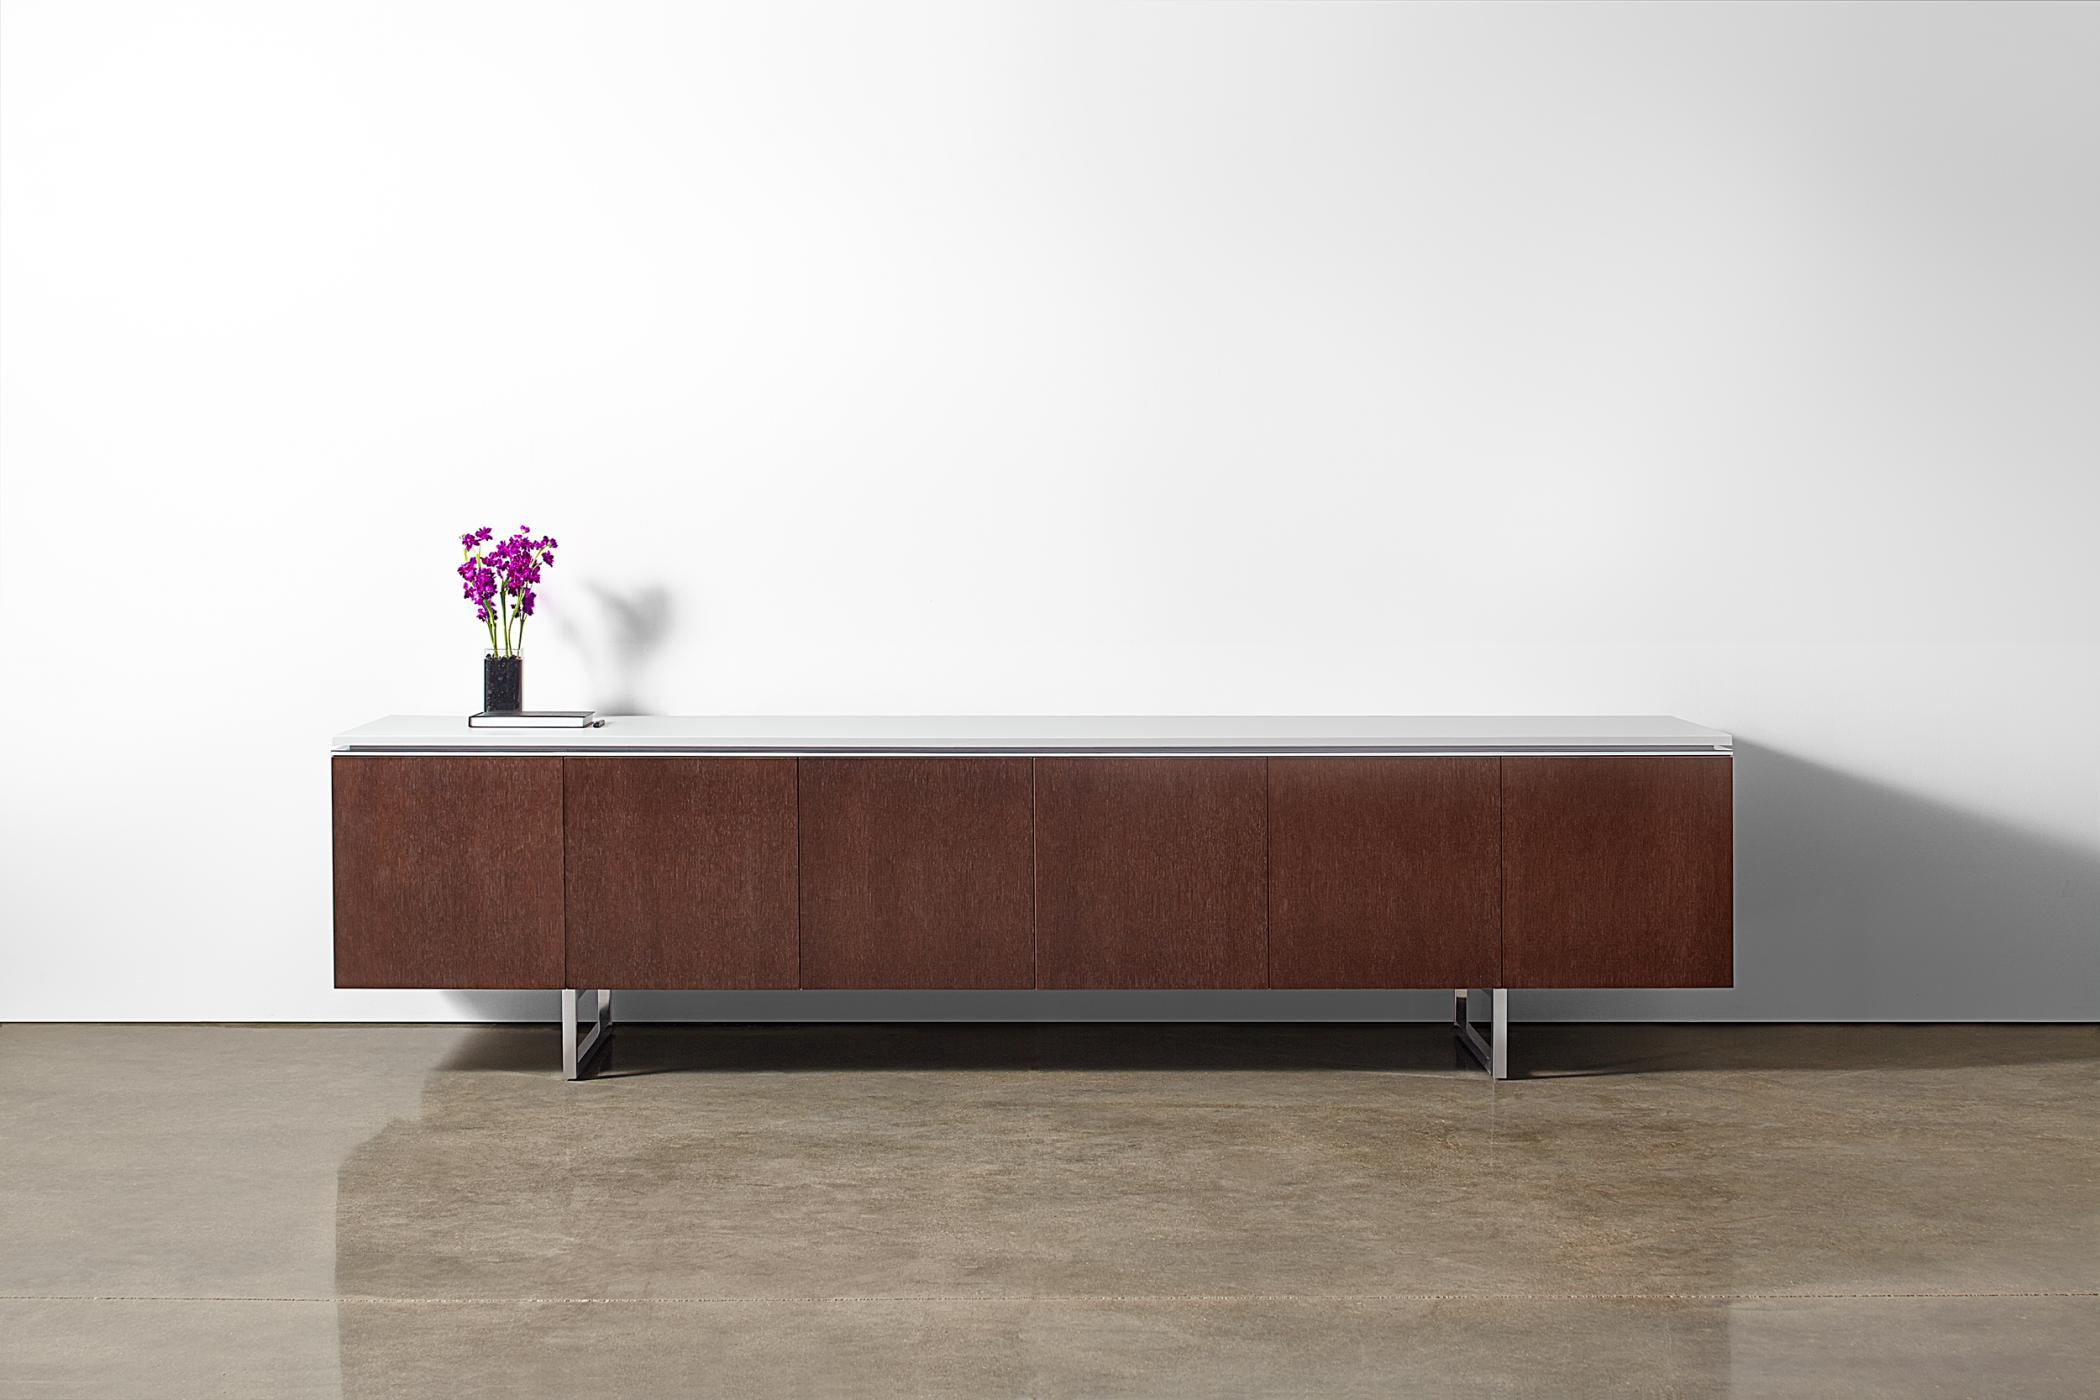 Mesa's Signature Credenza can be specified in a full range of materials, finishes, and sizes.